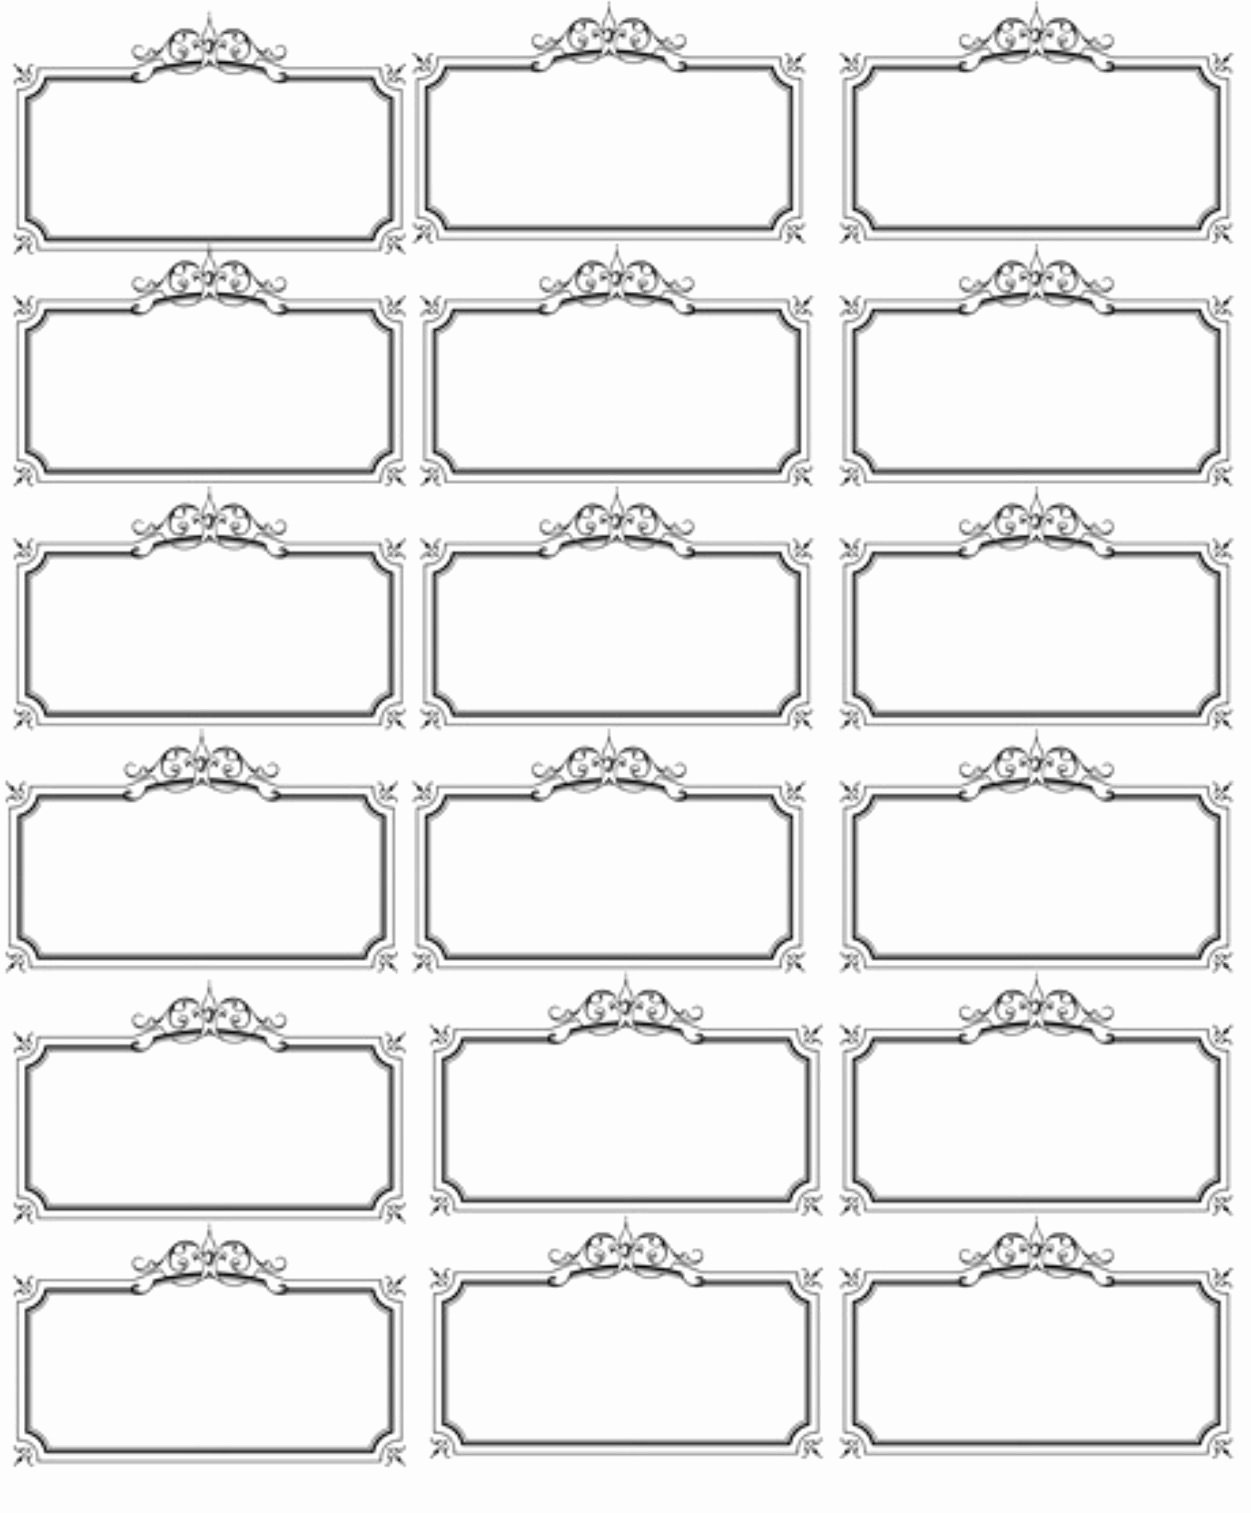 Template for Name Tags Awesome Pin by Dears Nov On Labels Pinterest